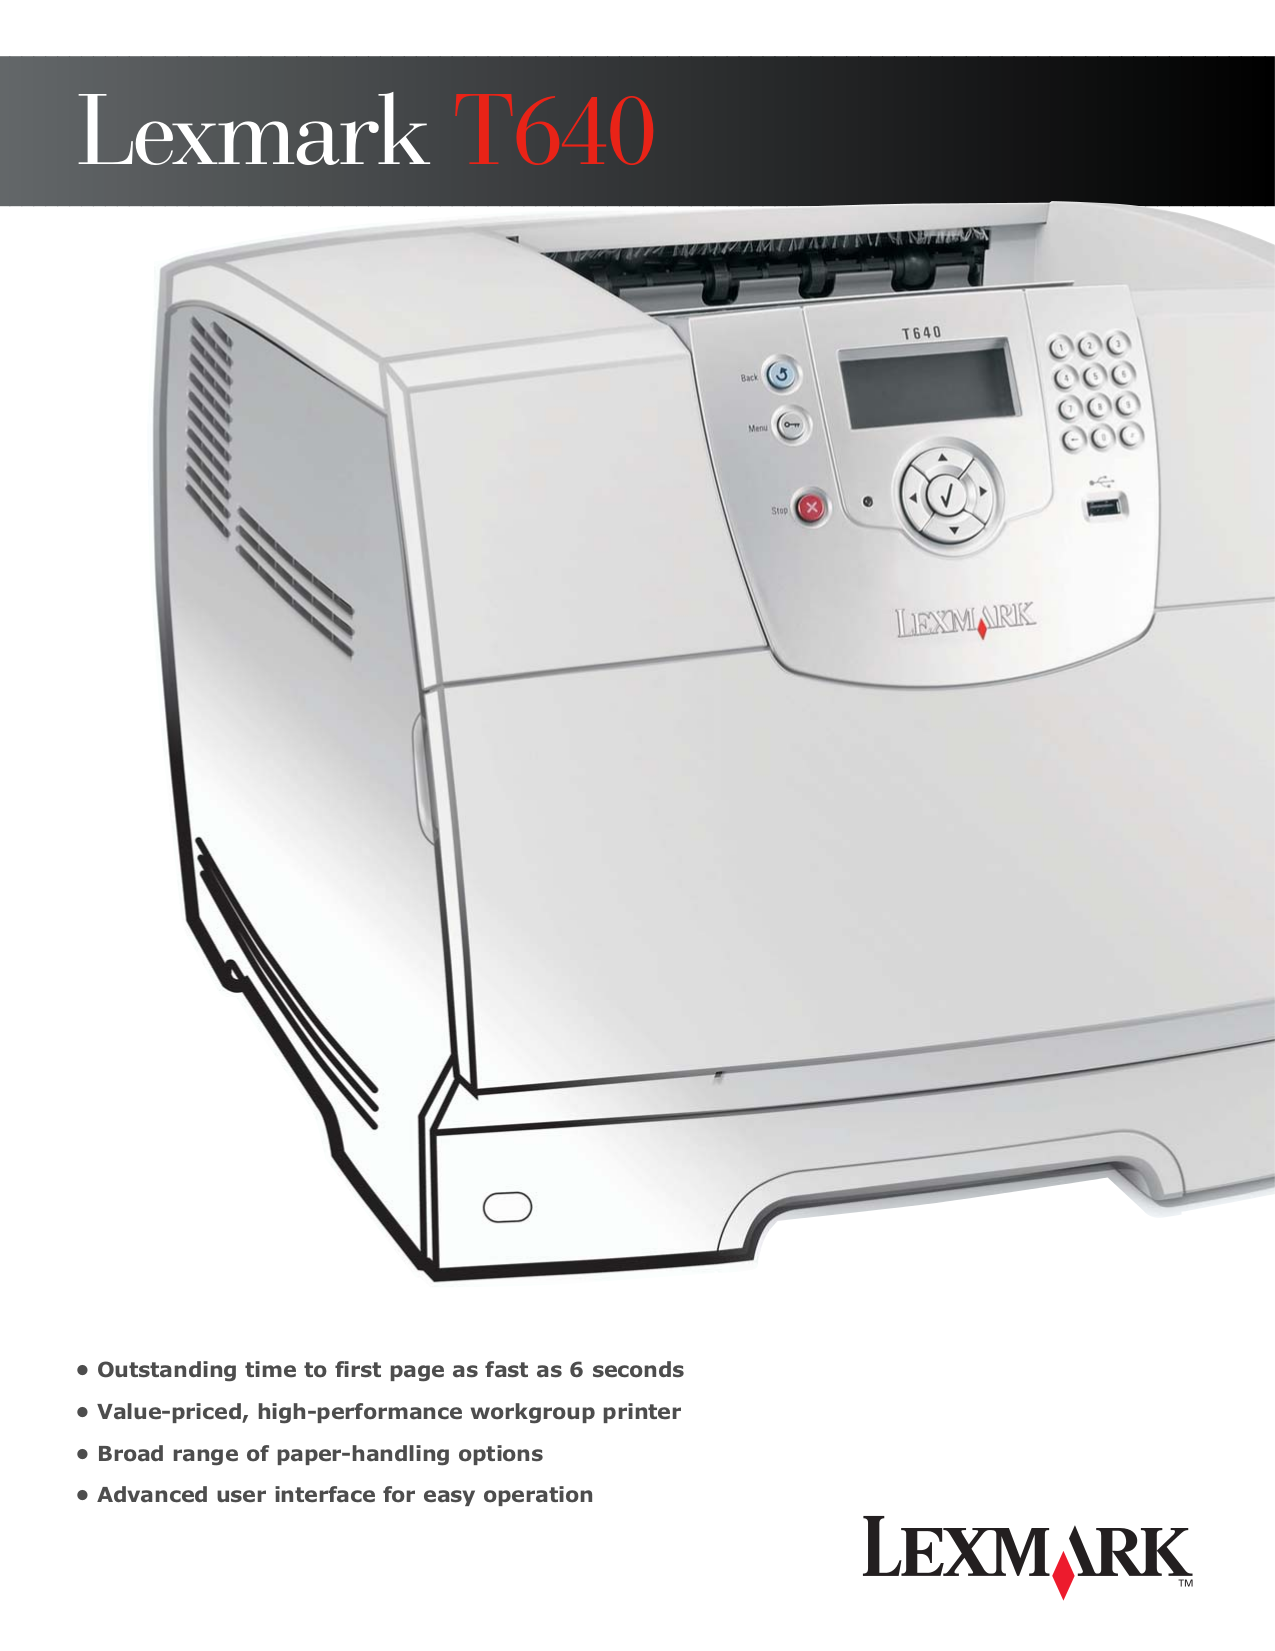 pdf for Lexmark Printer T640n manual